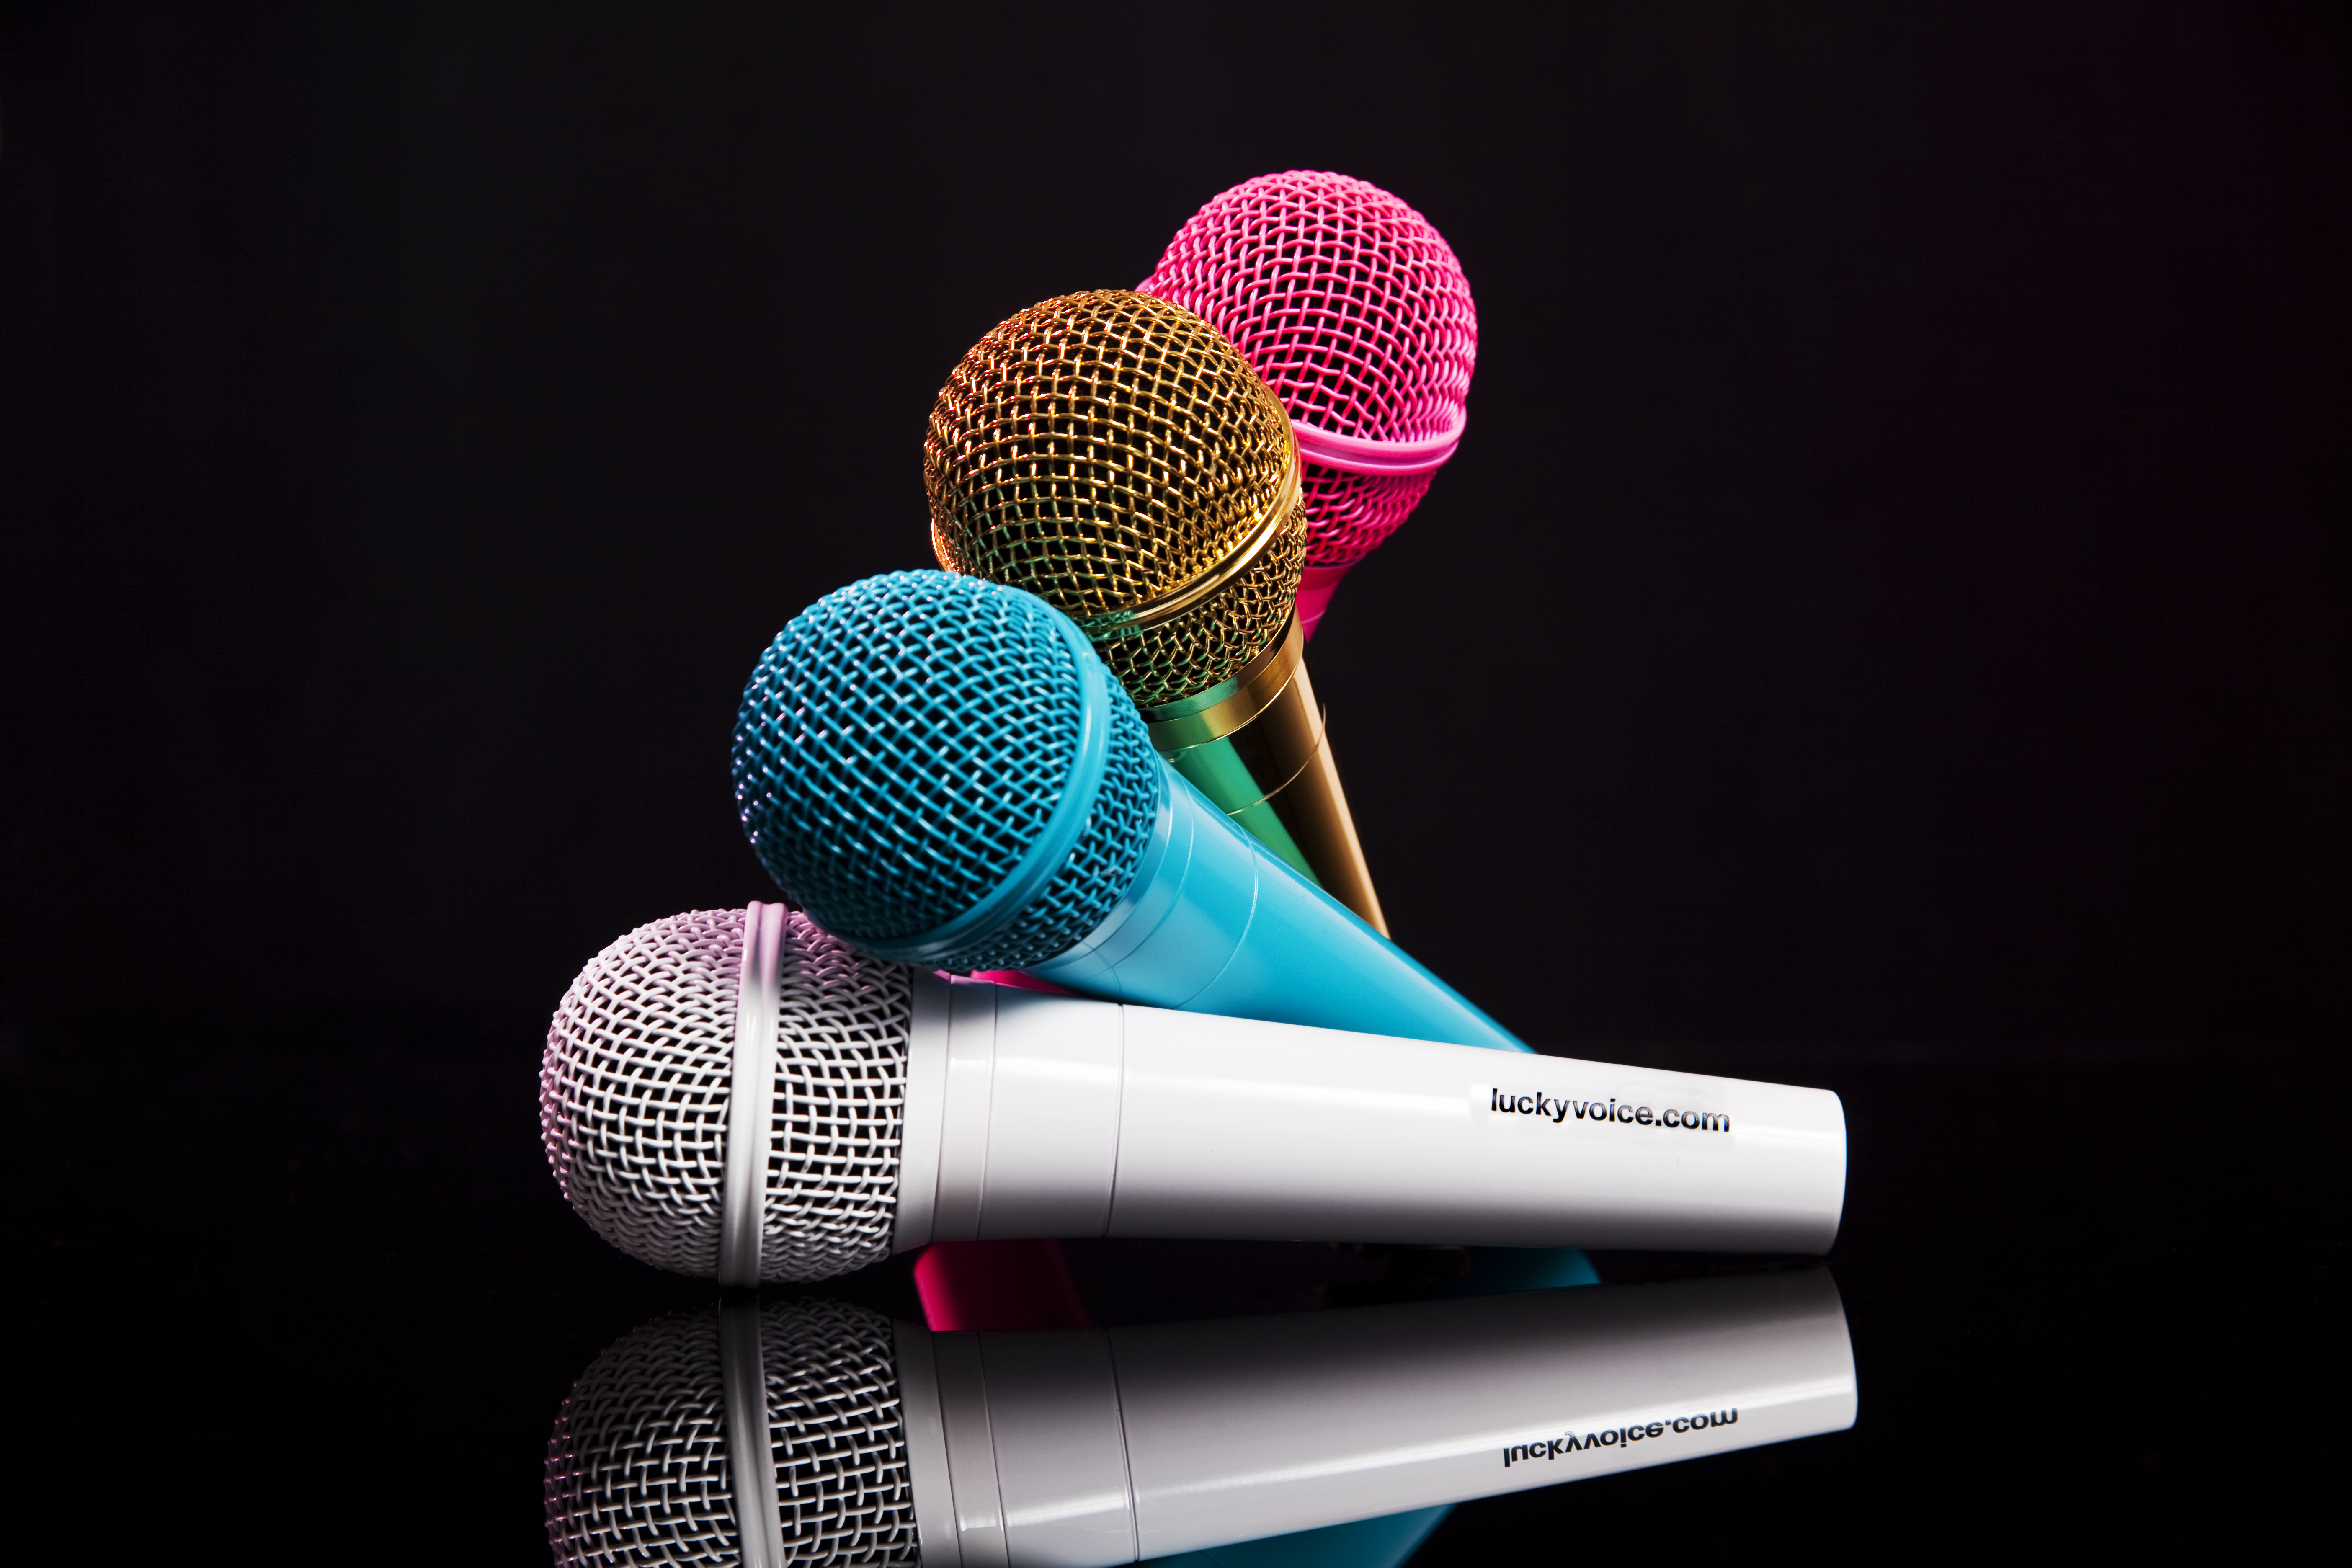 Mother's Day Deal - Image showing Lucky Voice Microphones in 4 Colours